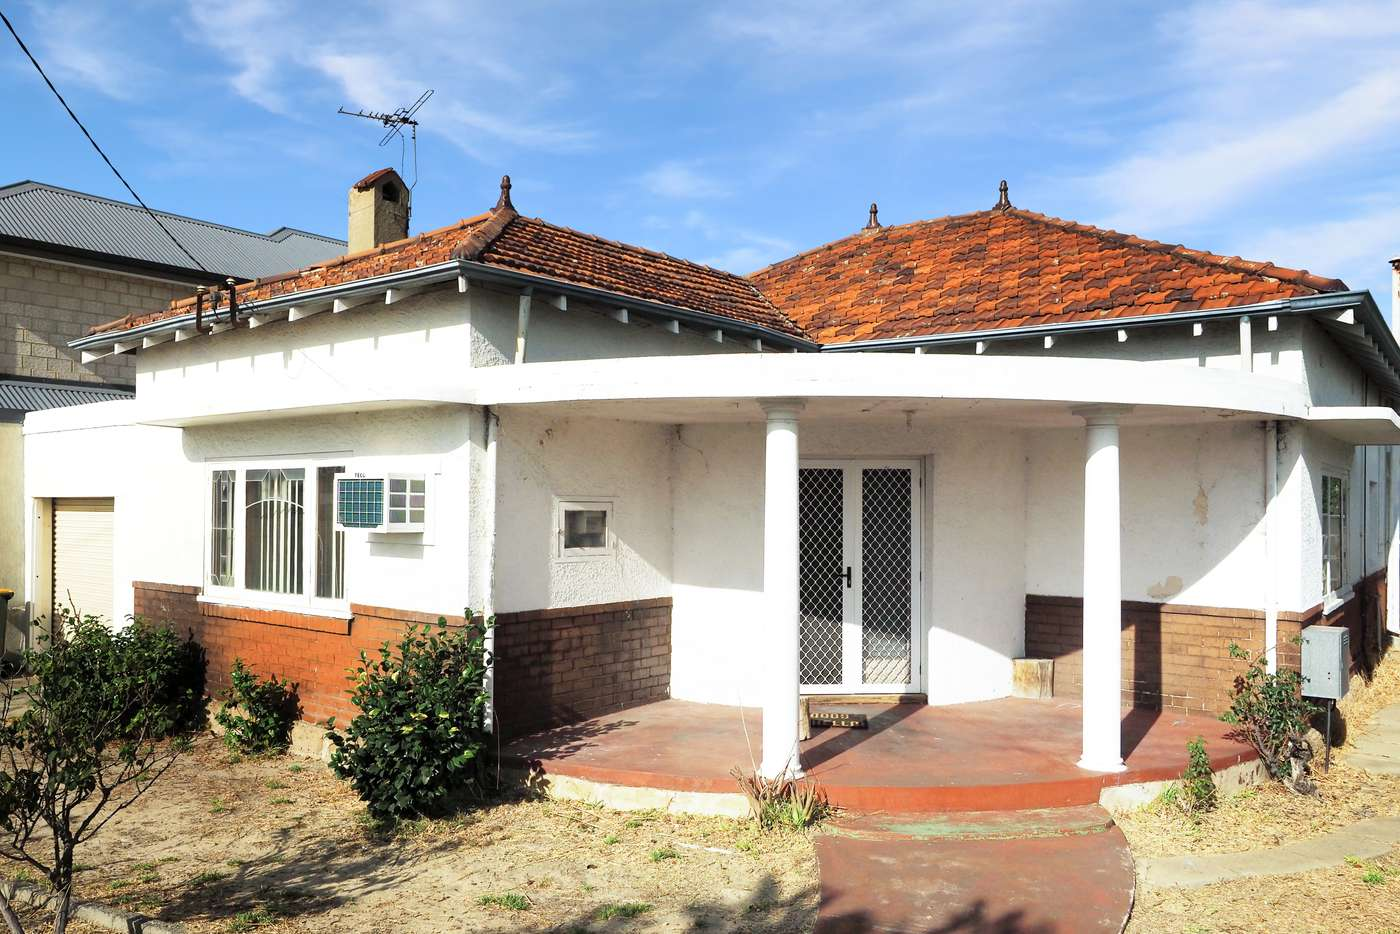 Main view of Homely house listing, 487 Charles Street, North Perth WA 6006